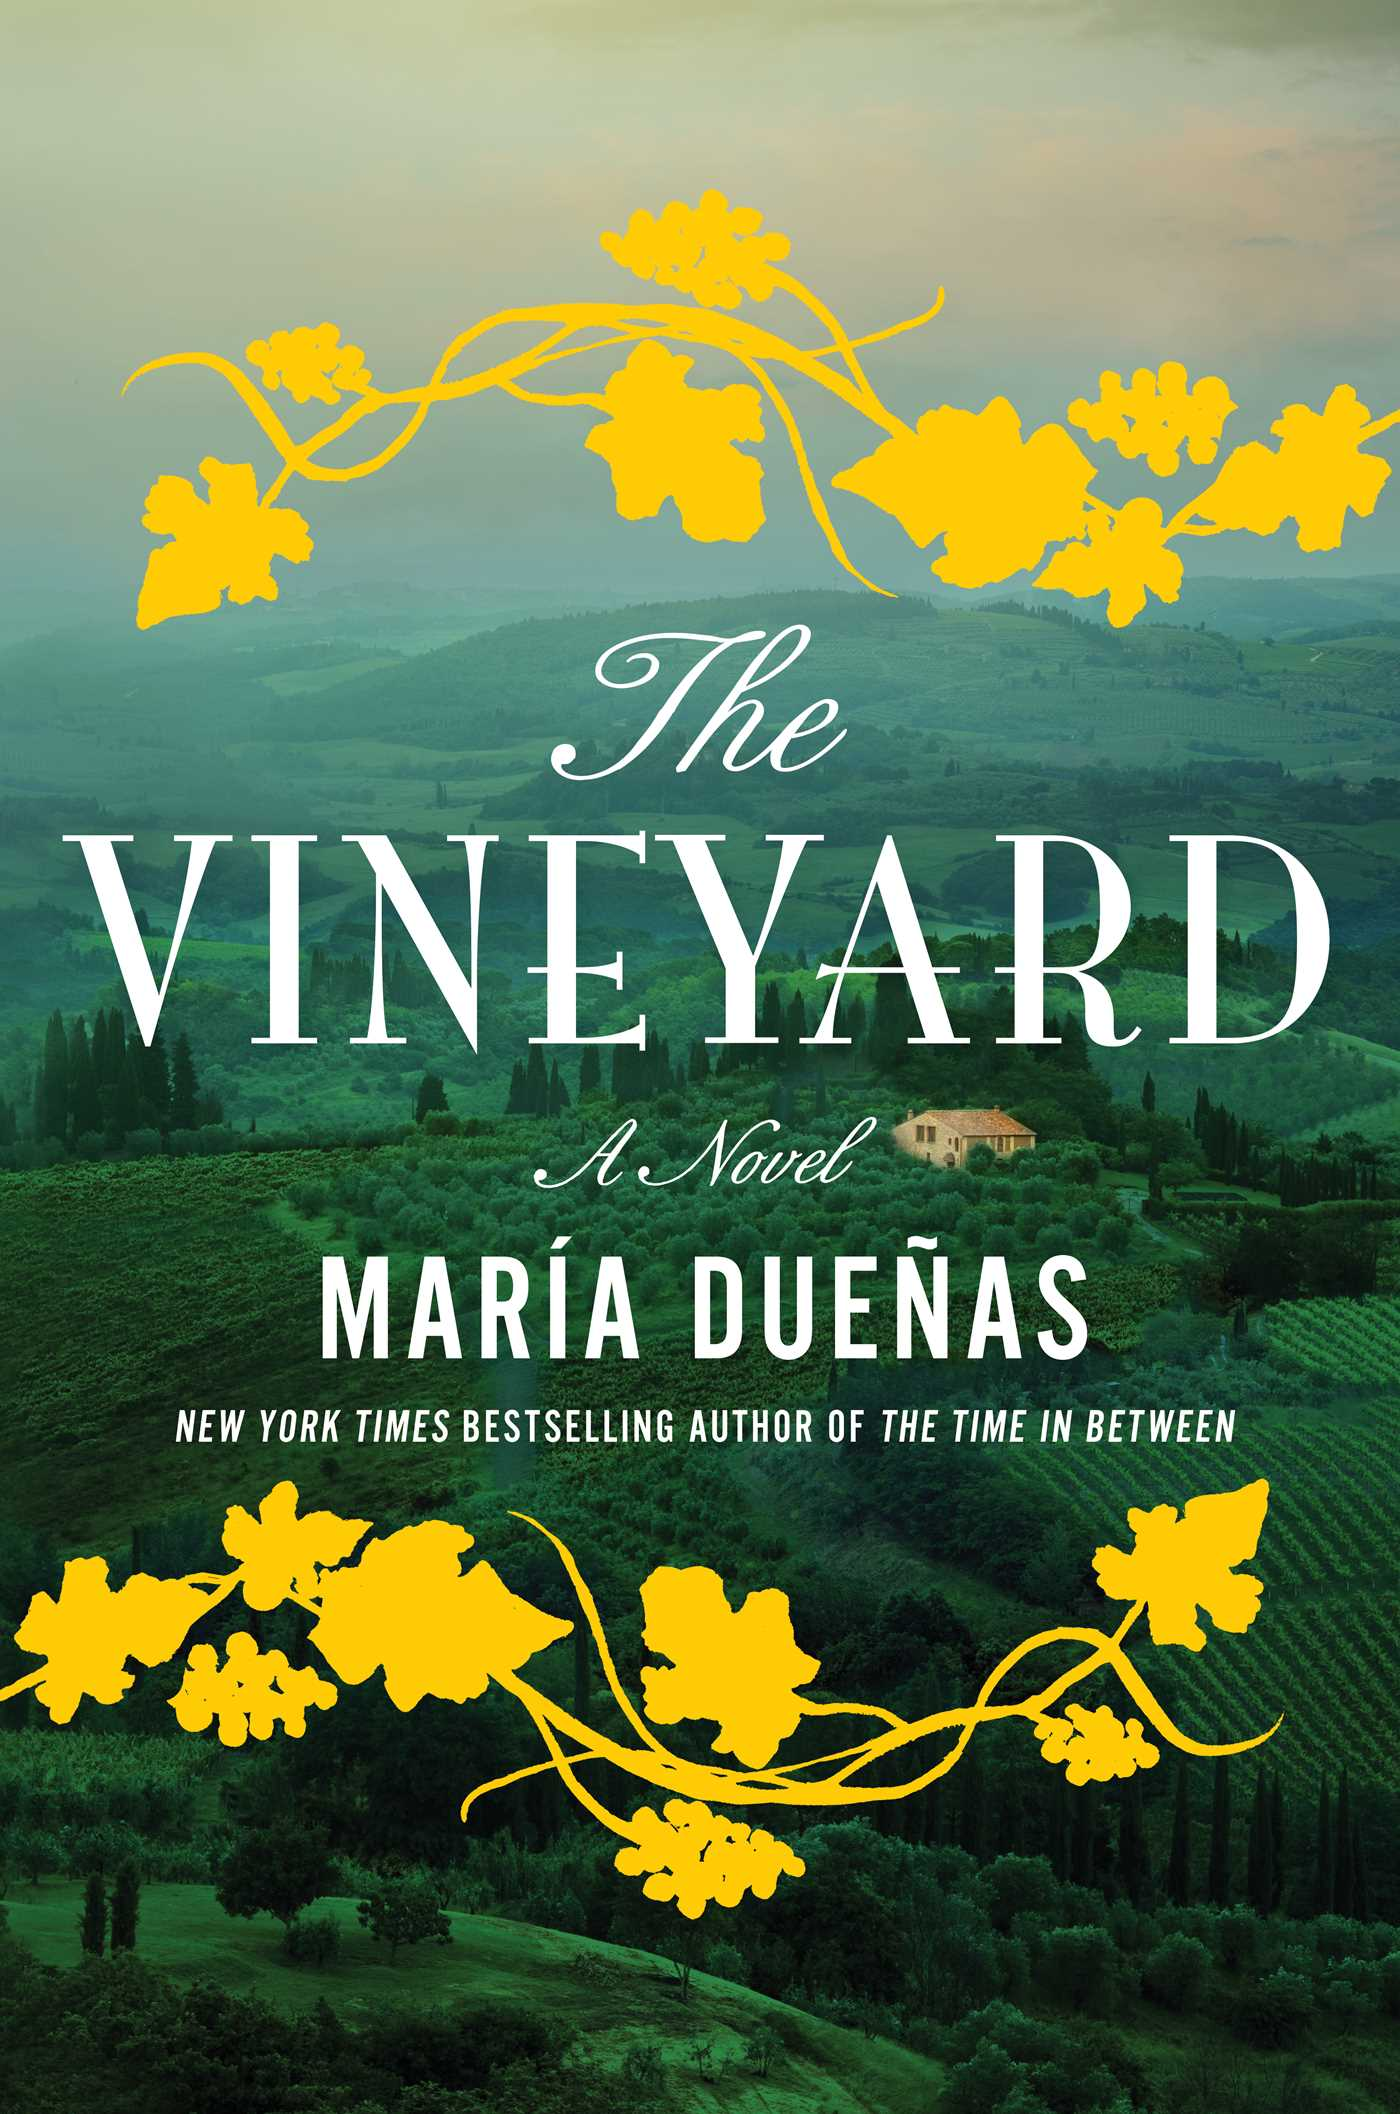 The vineyard 9781501124532 hr